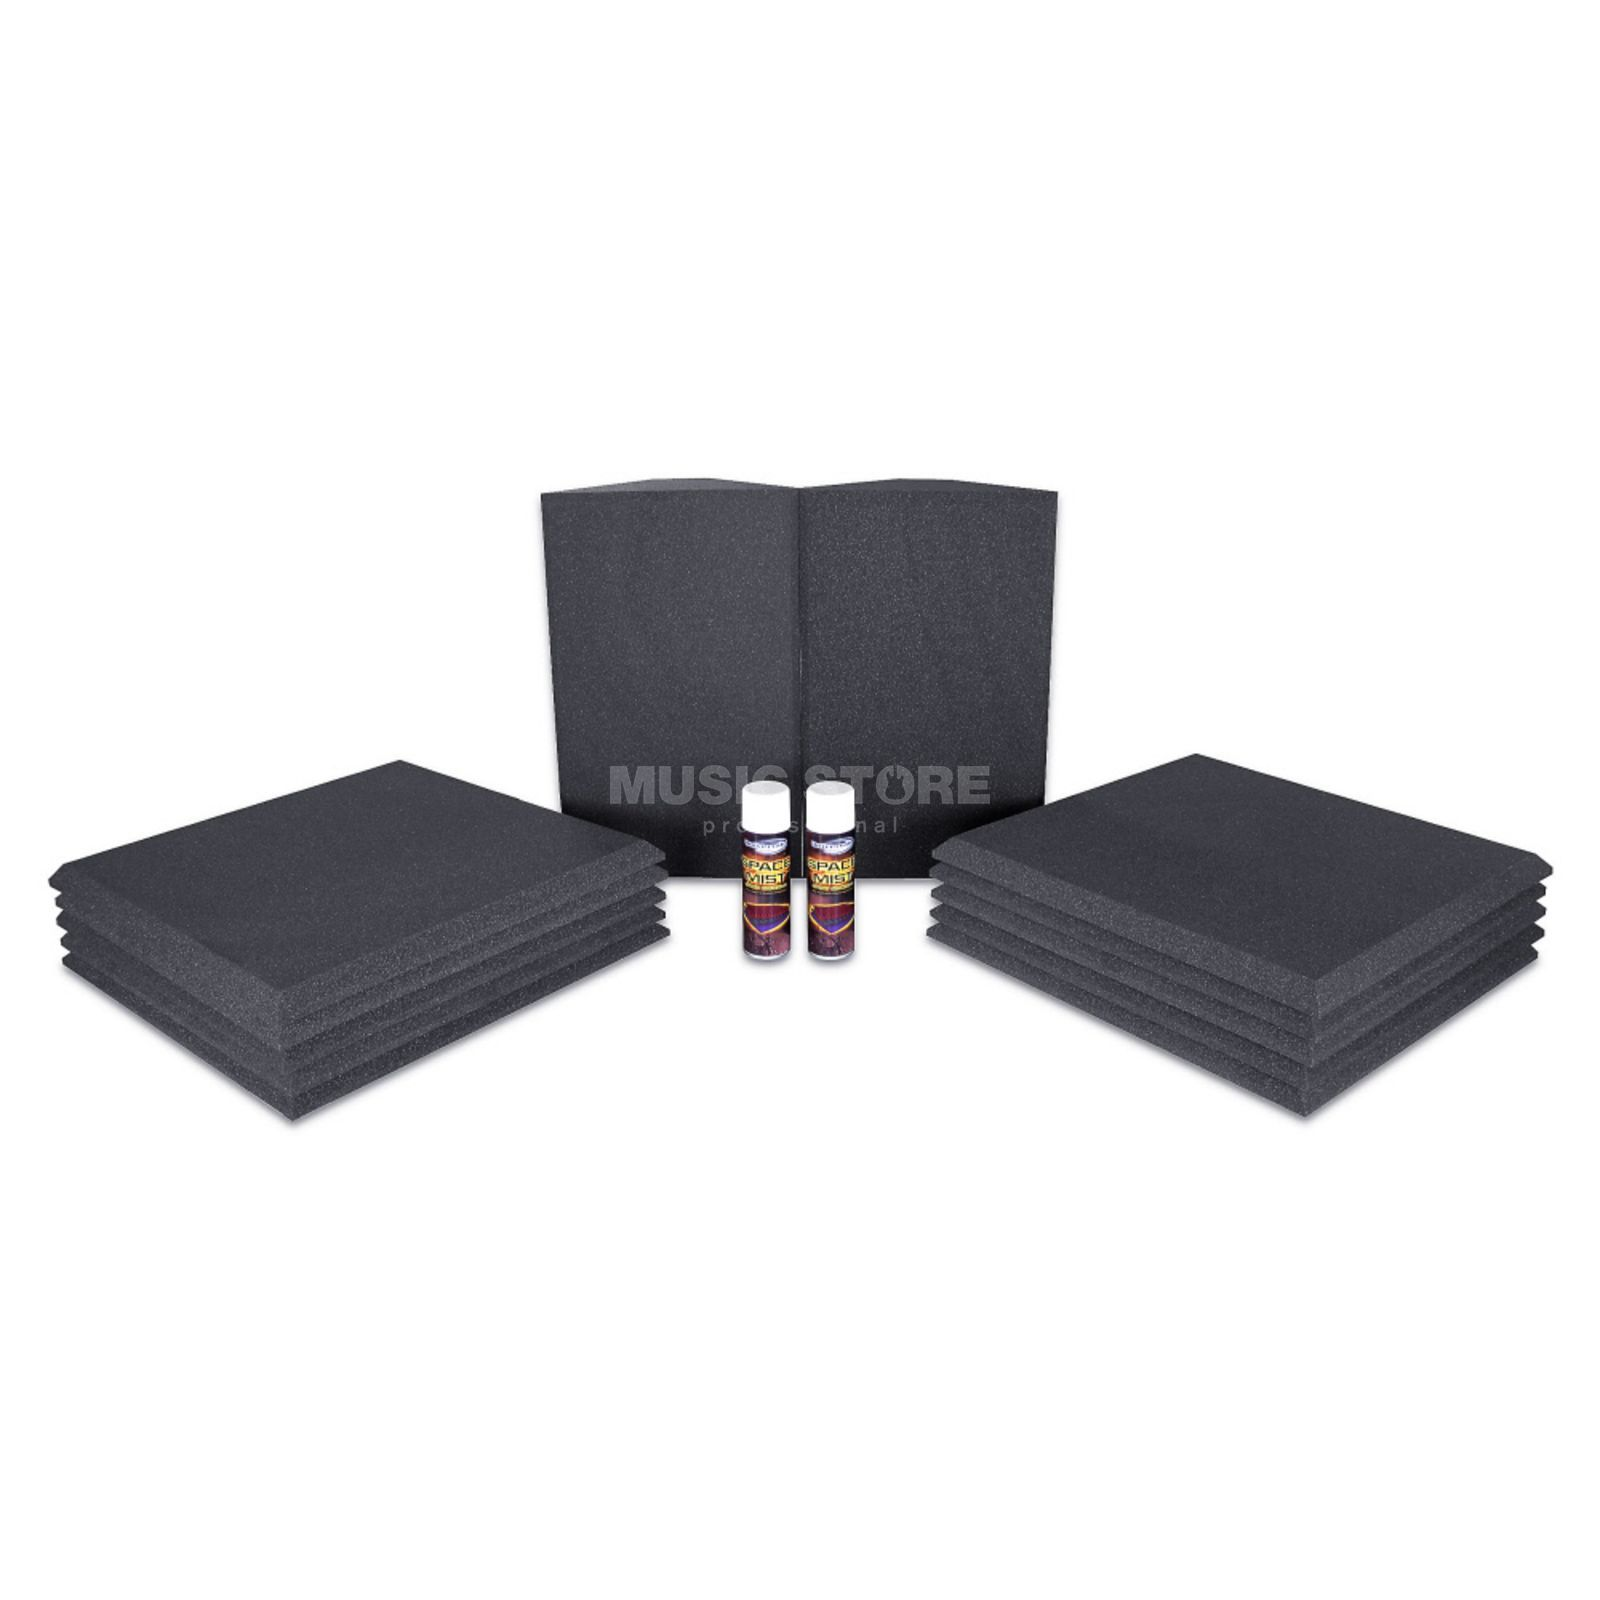 Universal Acoustics Neptune-2 Room Kit 14-piece, 3.6m², anthracite Produktbillede